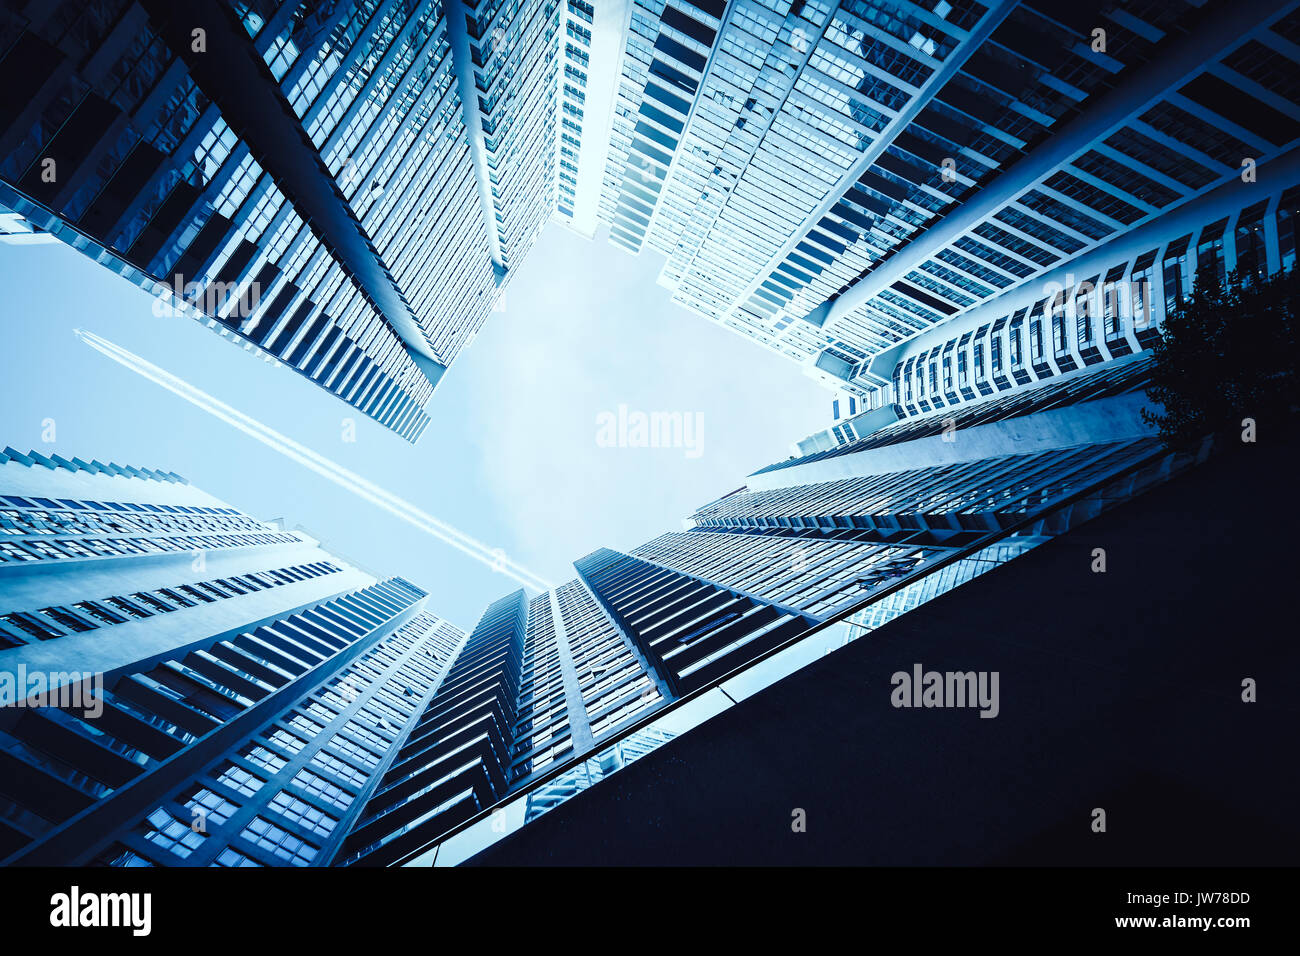 Airplane contrail against clear blue sky with abstract low angle view of common modern office skyscrapers. - Stock Image